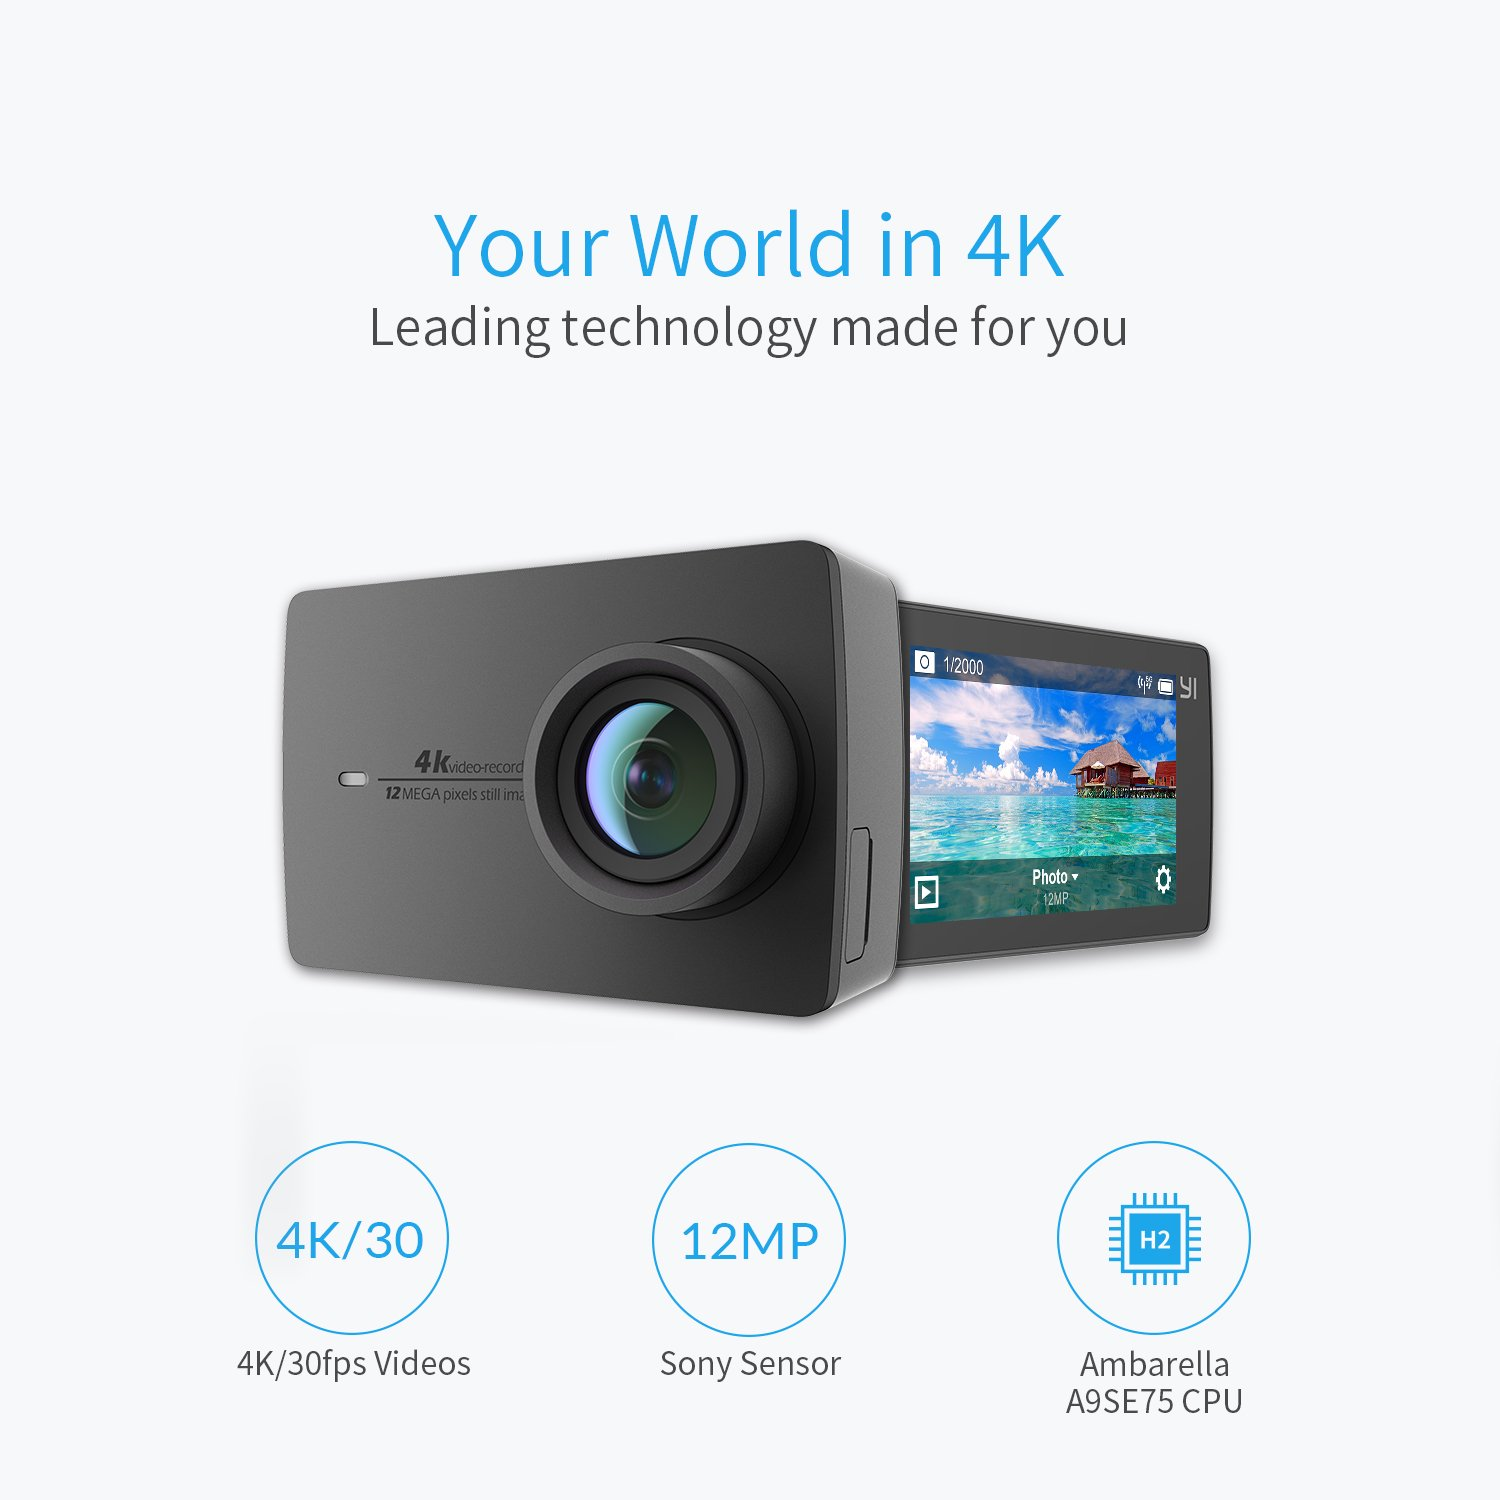 Yi 4k Action And Sports Camera 30fps Video 12mp Raw Xiaomi 2 Gen Image With Eis Live Stream Voice Control Black Photo